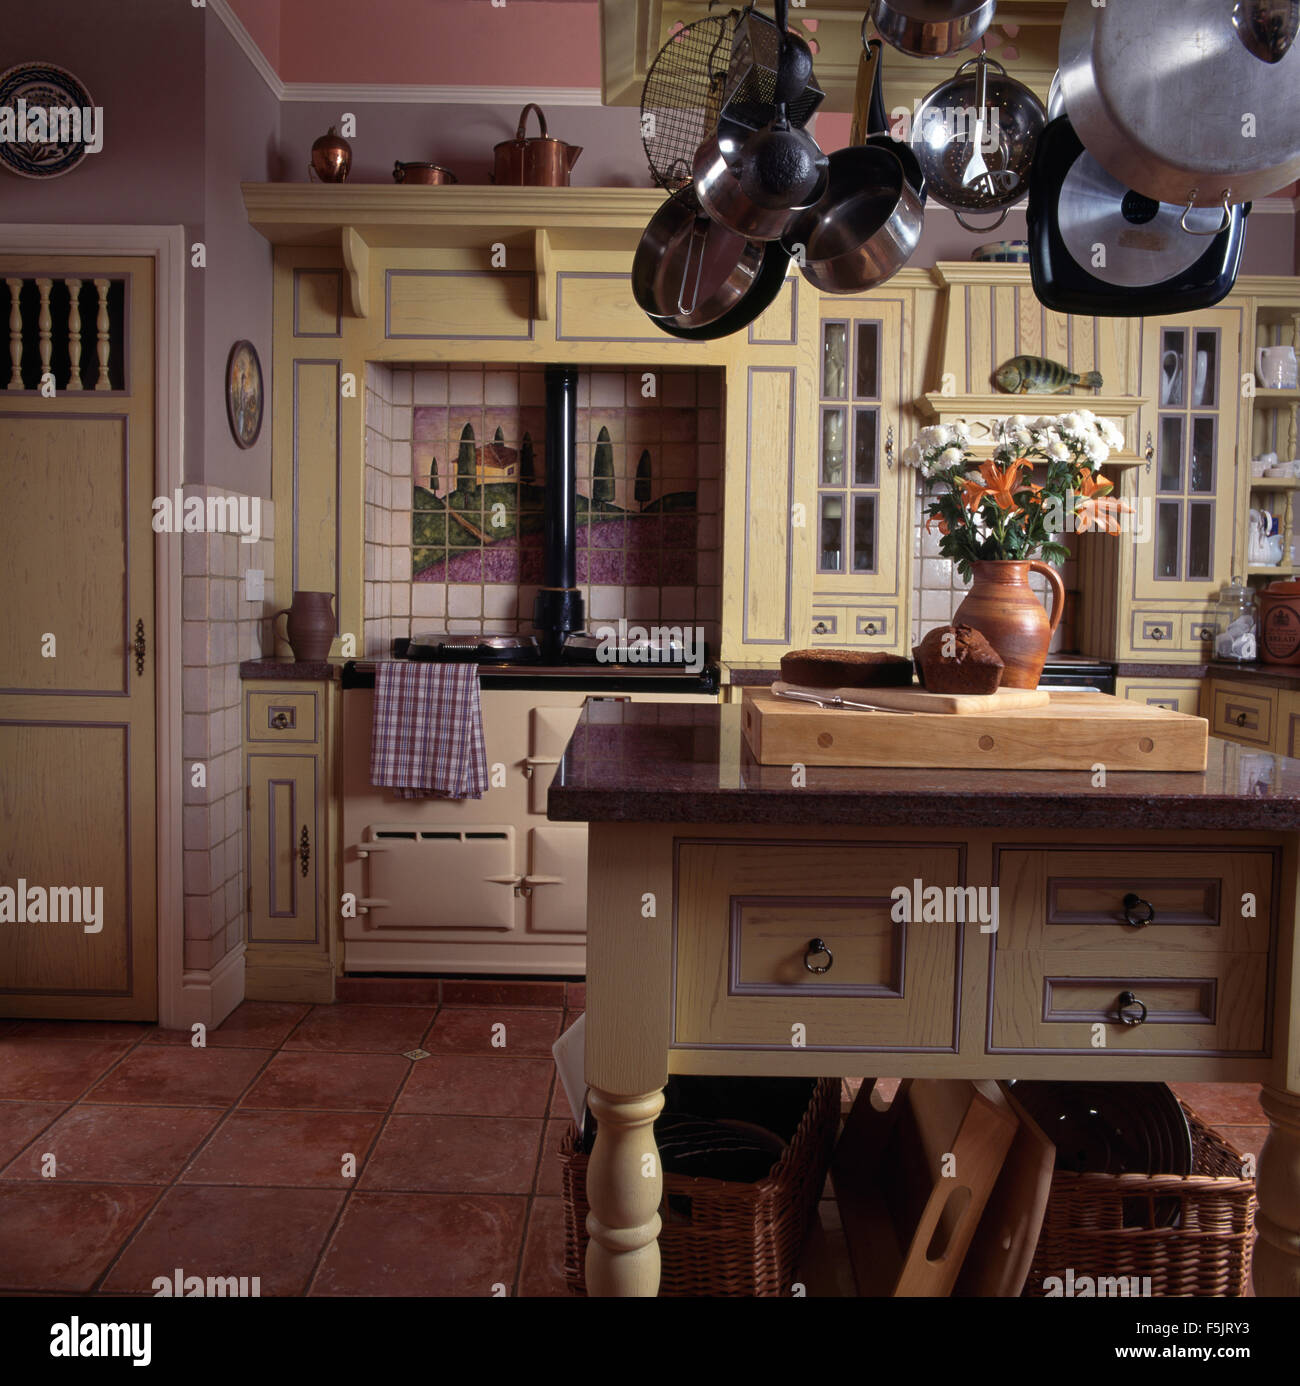 Stainless Steel Pans On Rack Above Island Unit In A Country Kitchen Stock Photo Alamy